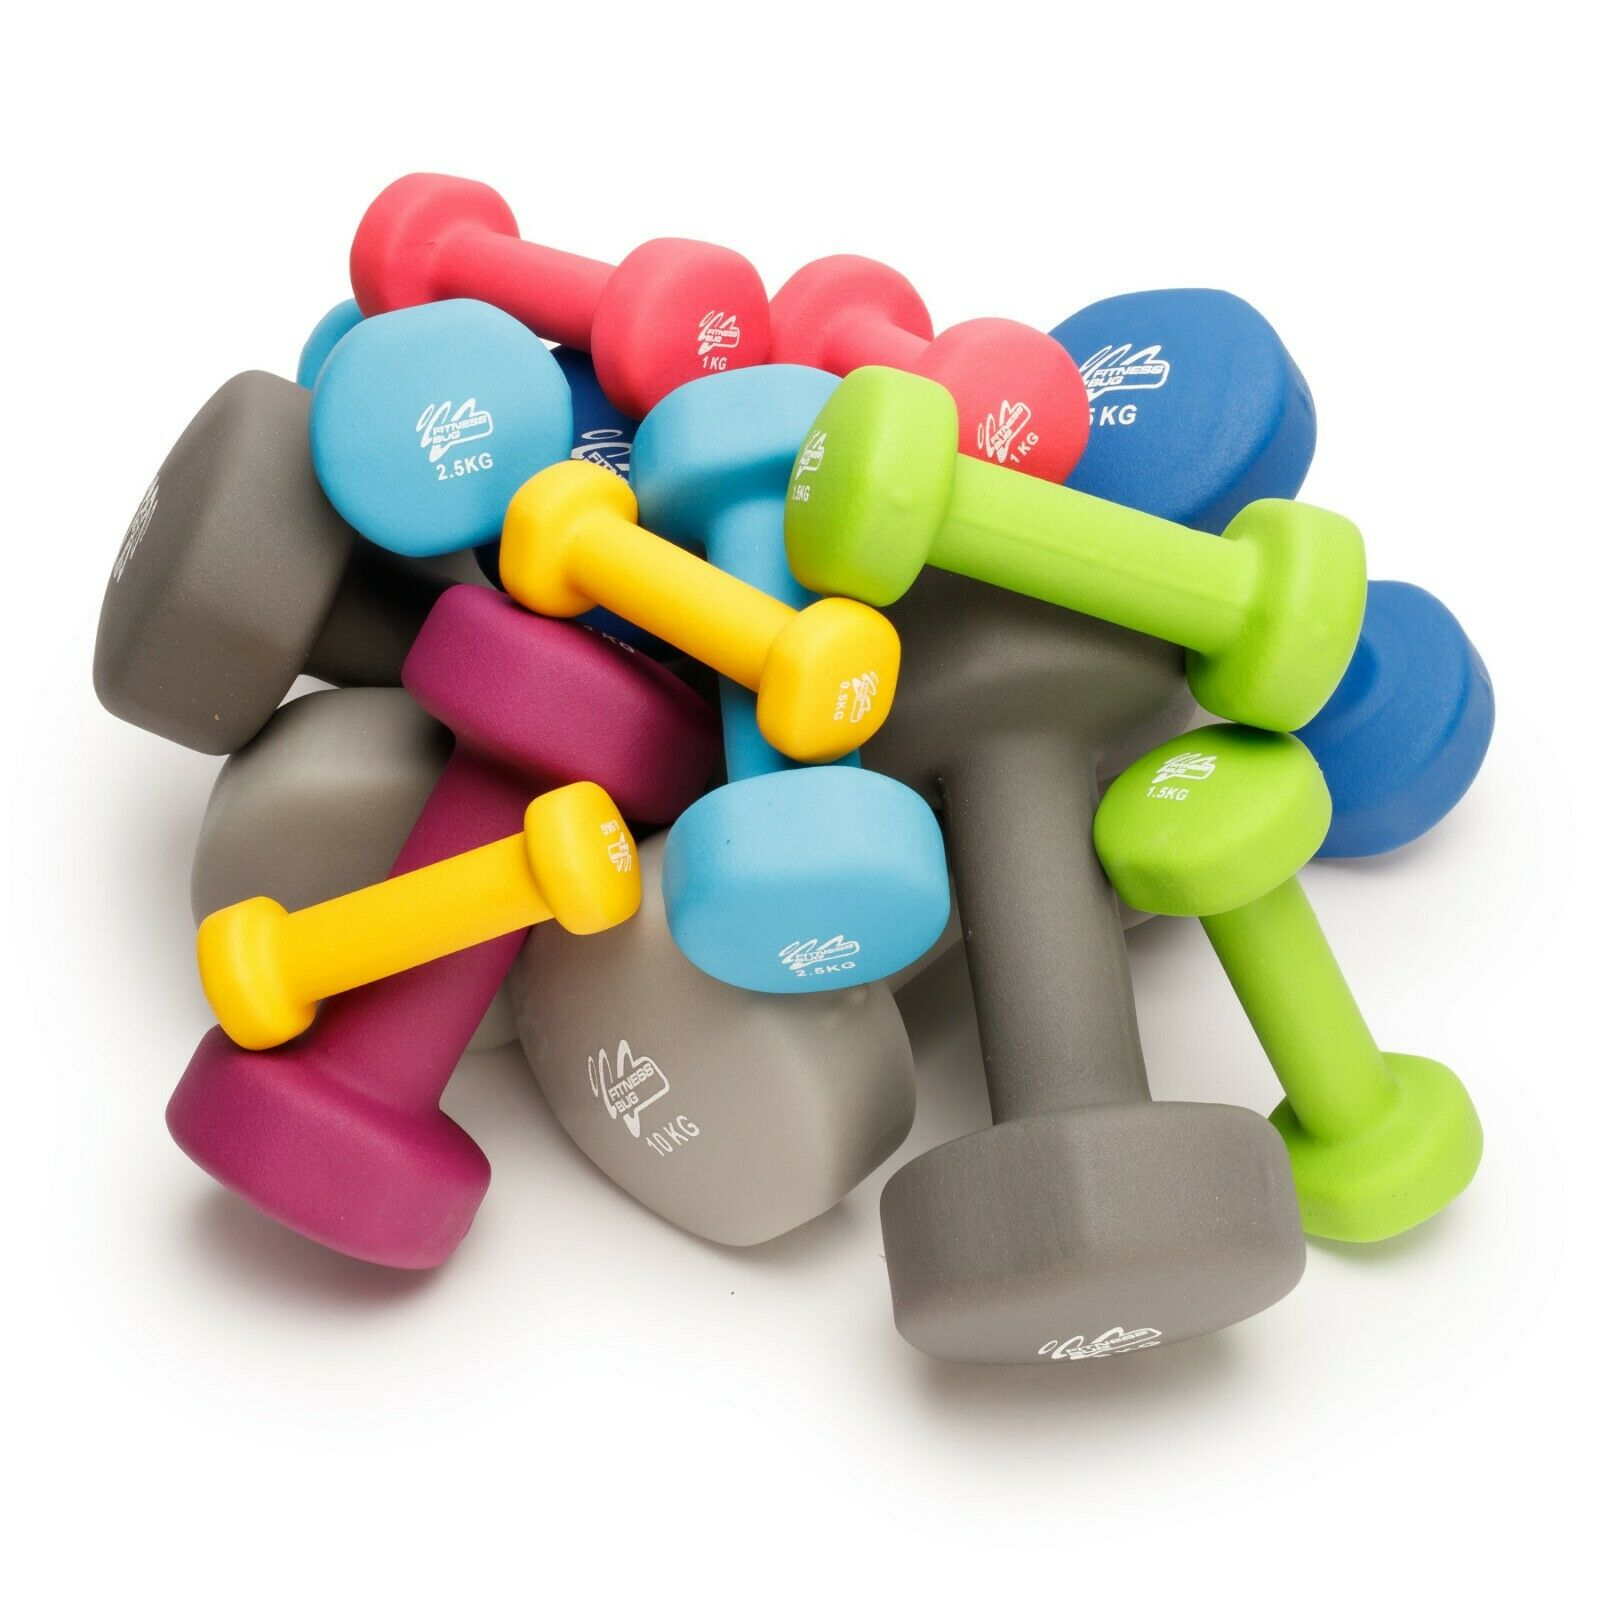 Neoprene Dumbbells Weights Home Gym Fitness Aerobic Exercise Iron Pair Hand From £12.99 @ eBay